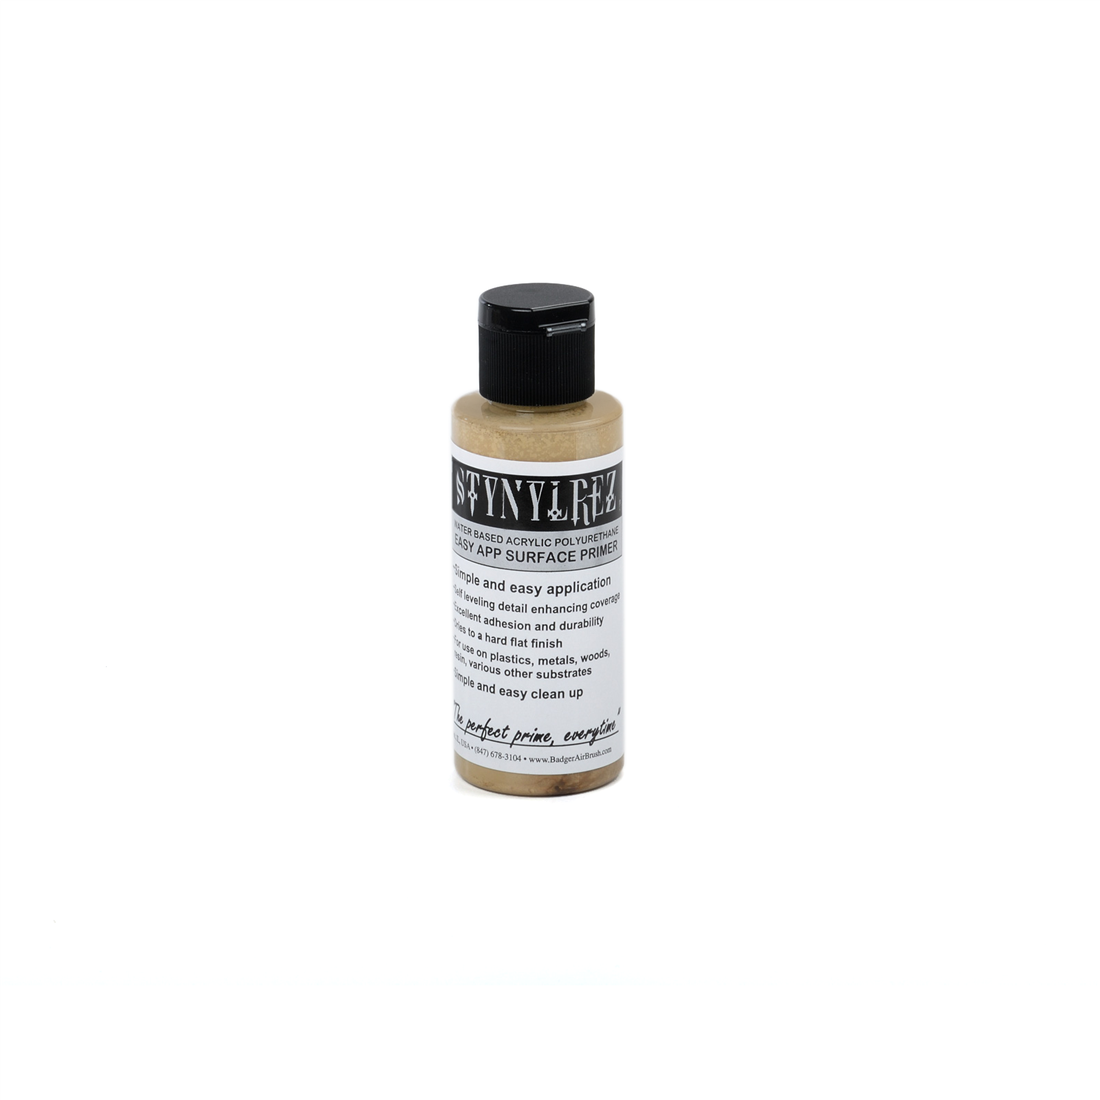 206 Badger Stynylrez yellow 60 ml.